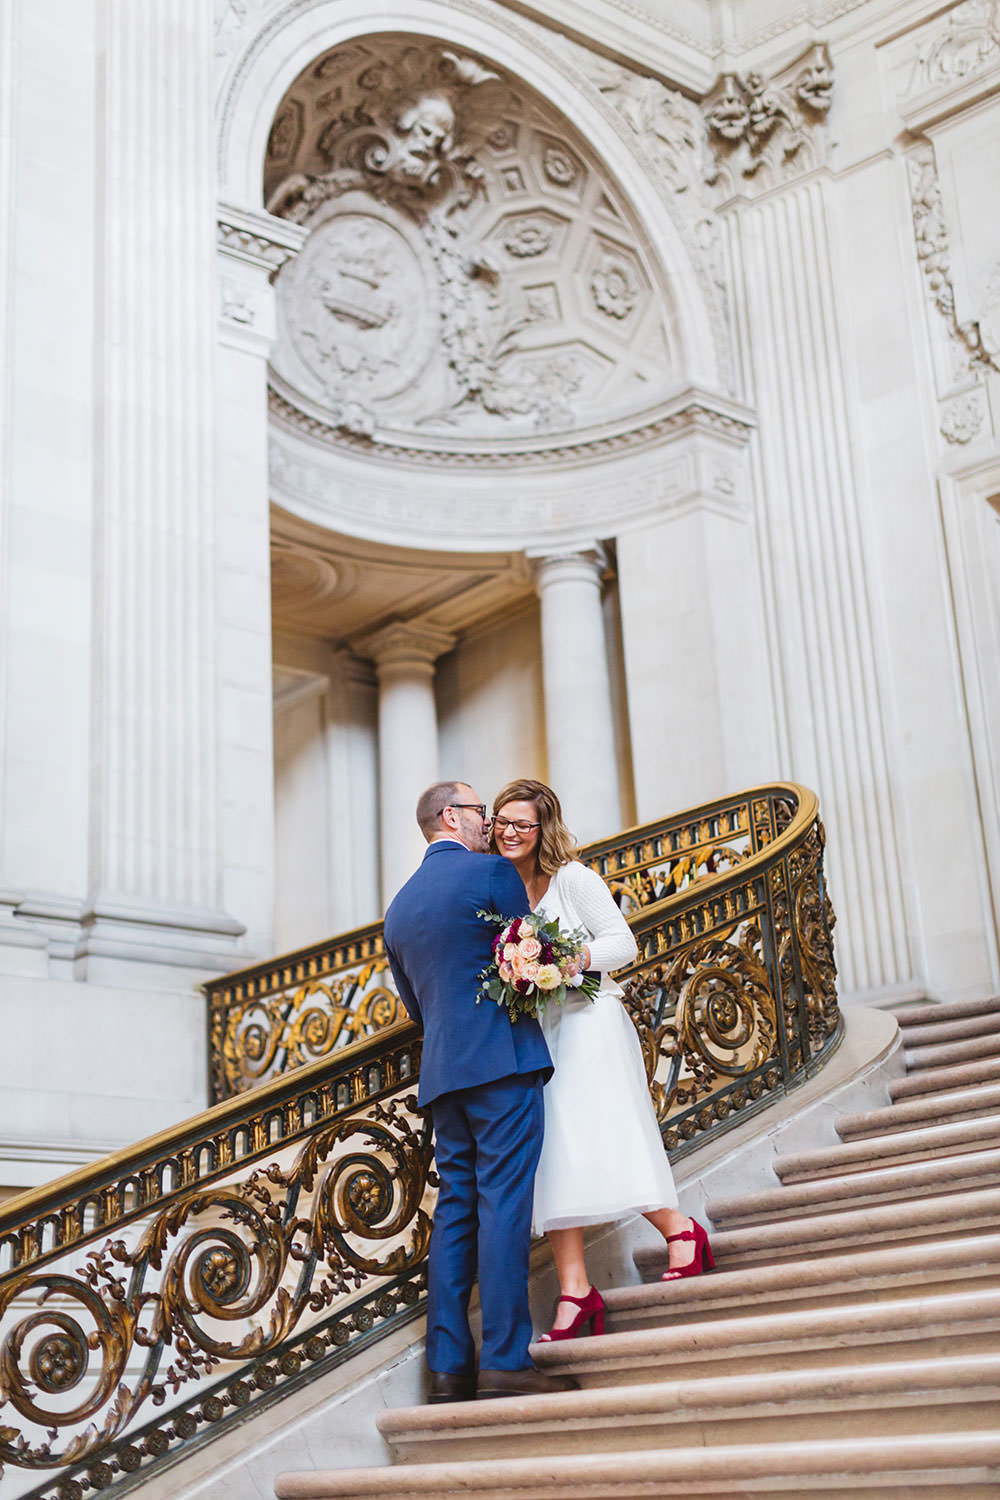 cute kisses on the grand staircase with bride in red shoes at city hall